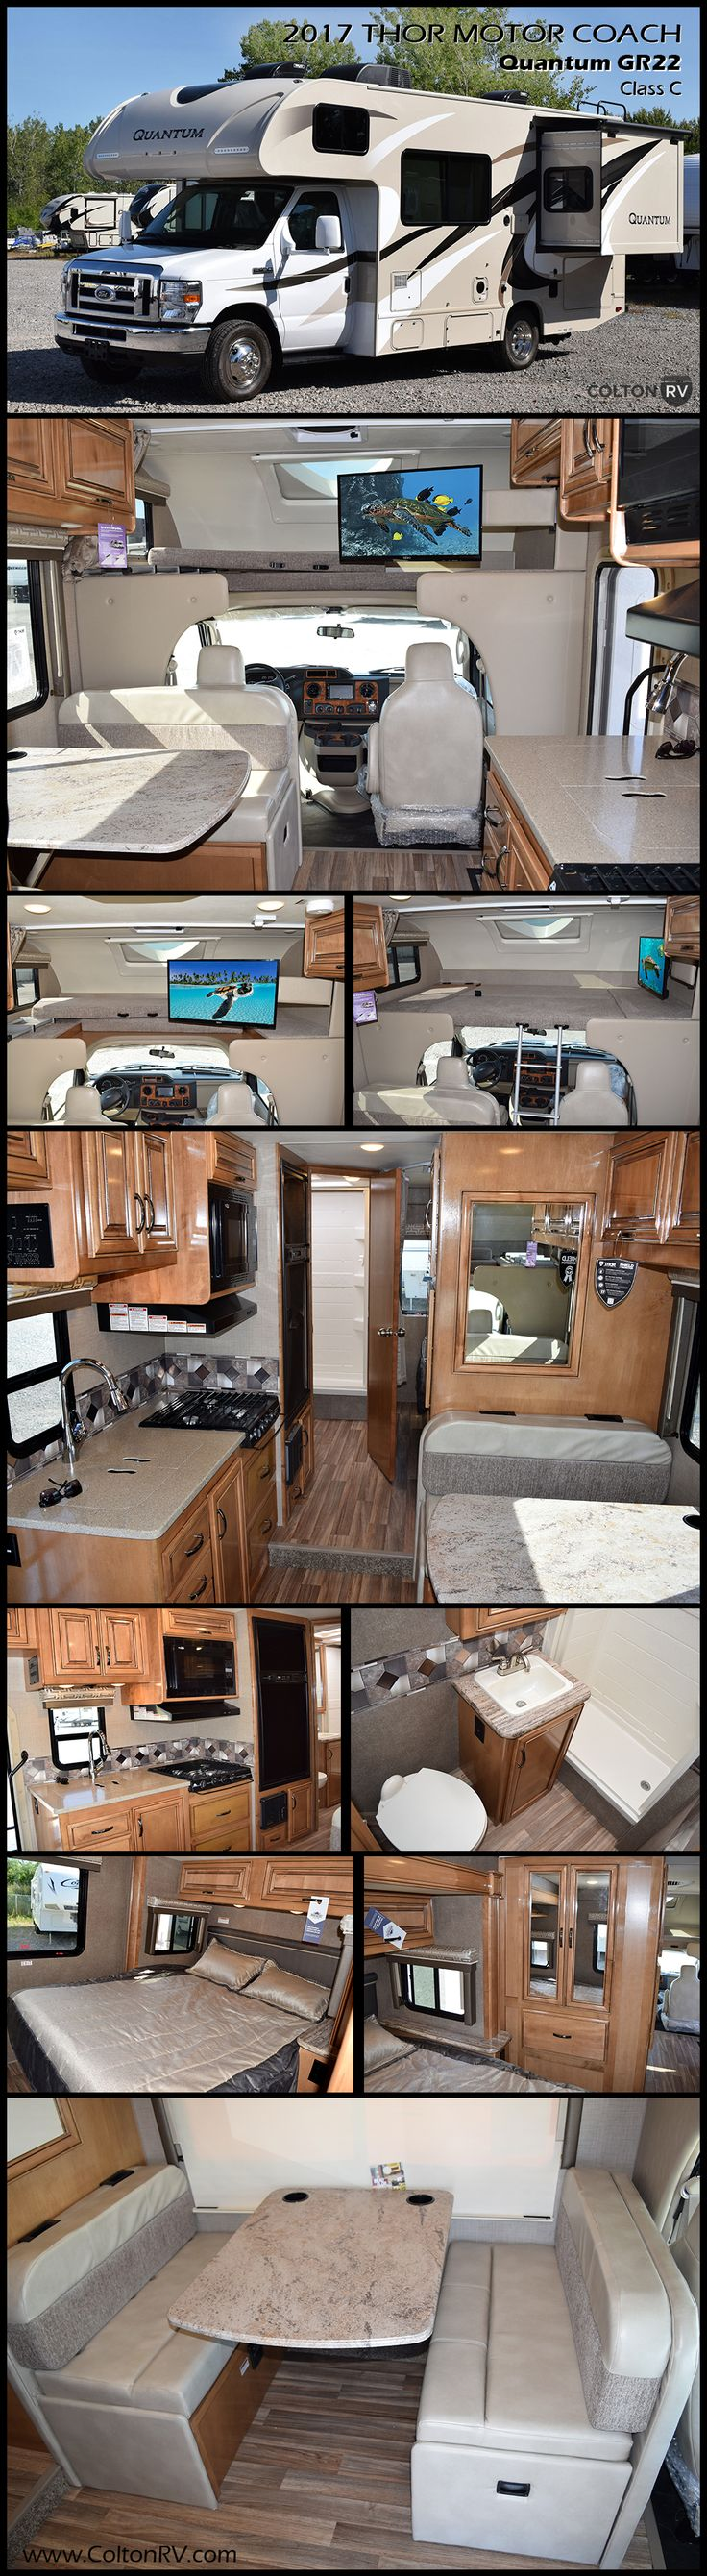 If you are on the market for a versatile Class C RV, but you need top quality decor and finishes, then the Quantum is for you! A rear bath, and rear side slide out queen bed are just a couple of the things that make this Thor Motor Coach Quantum class C gas motorhome unique providing sleeping space for 5, plus more! The cab-over bunk will be a favorite of the kids to sleep up top.